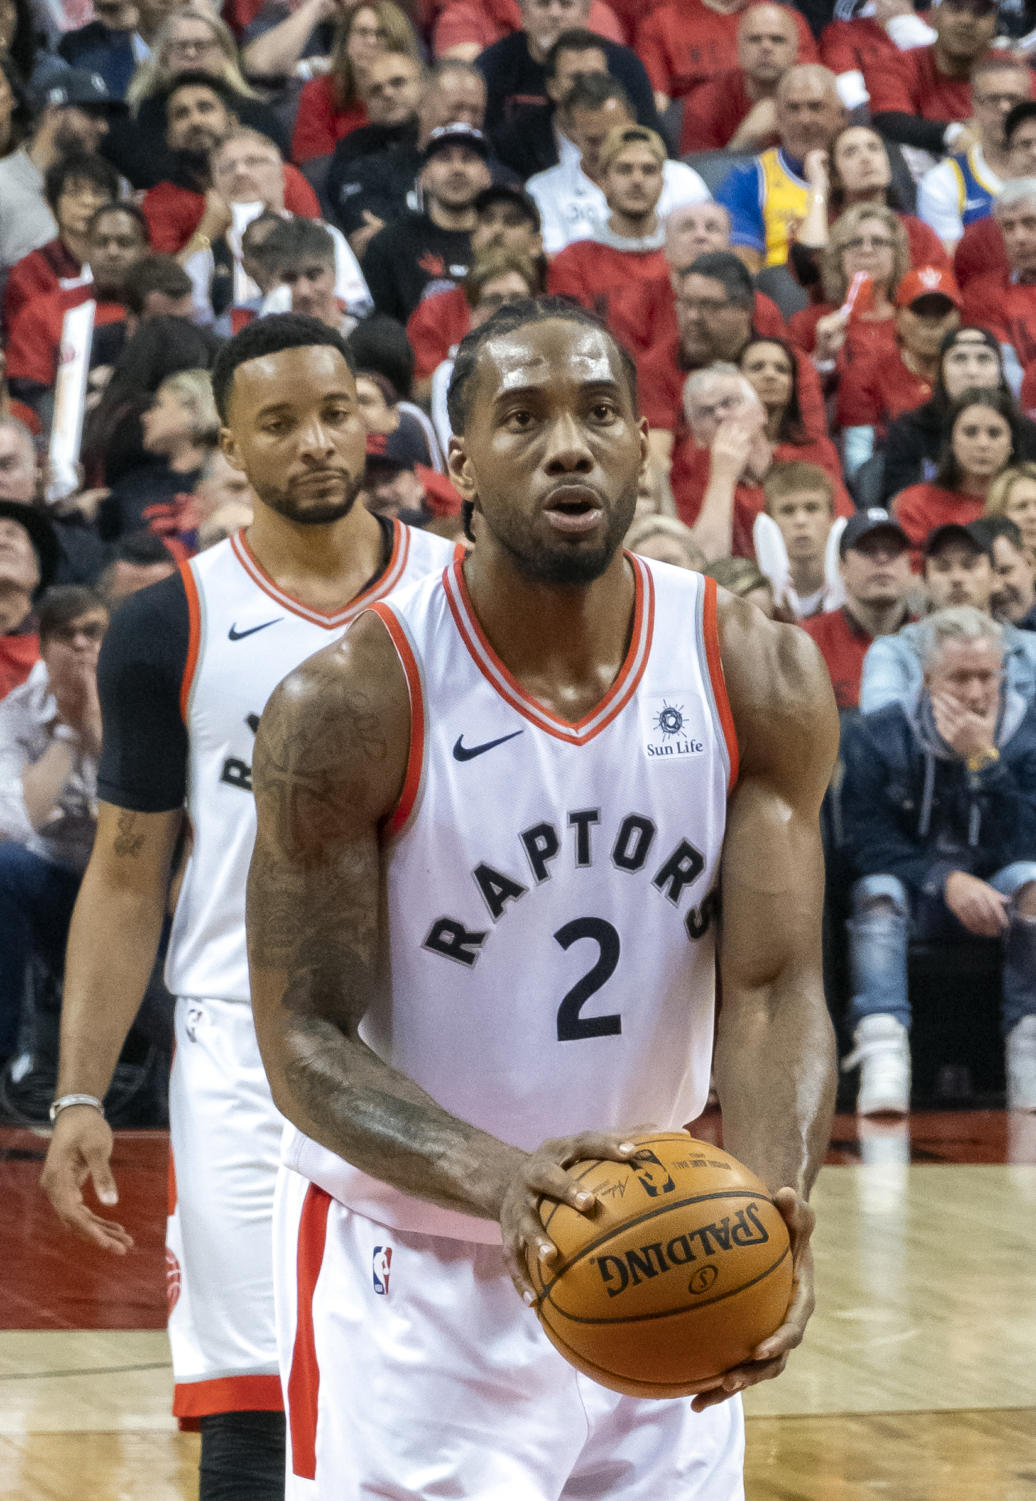 Kawhi Leonard, the Finals MVP, shoots a free throw in the 2019 NBA Finals. He was the star of the show in that series, helping the Toronto Raptors win their first NBA Championship. Leonard surprised the league when he signed with the LA Clippers in the off-season.